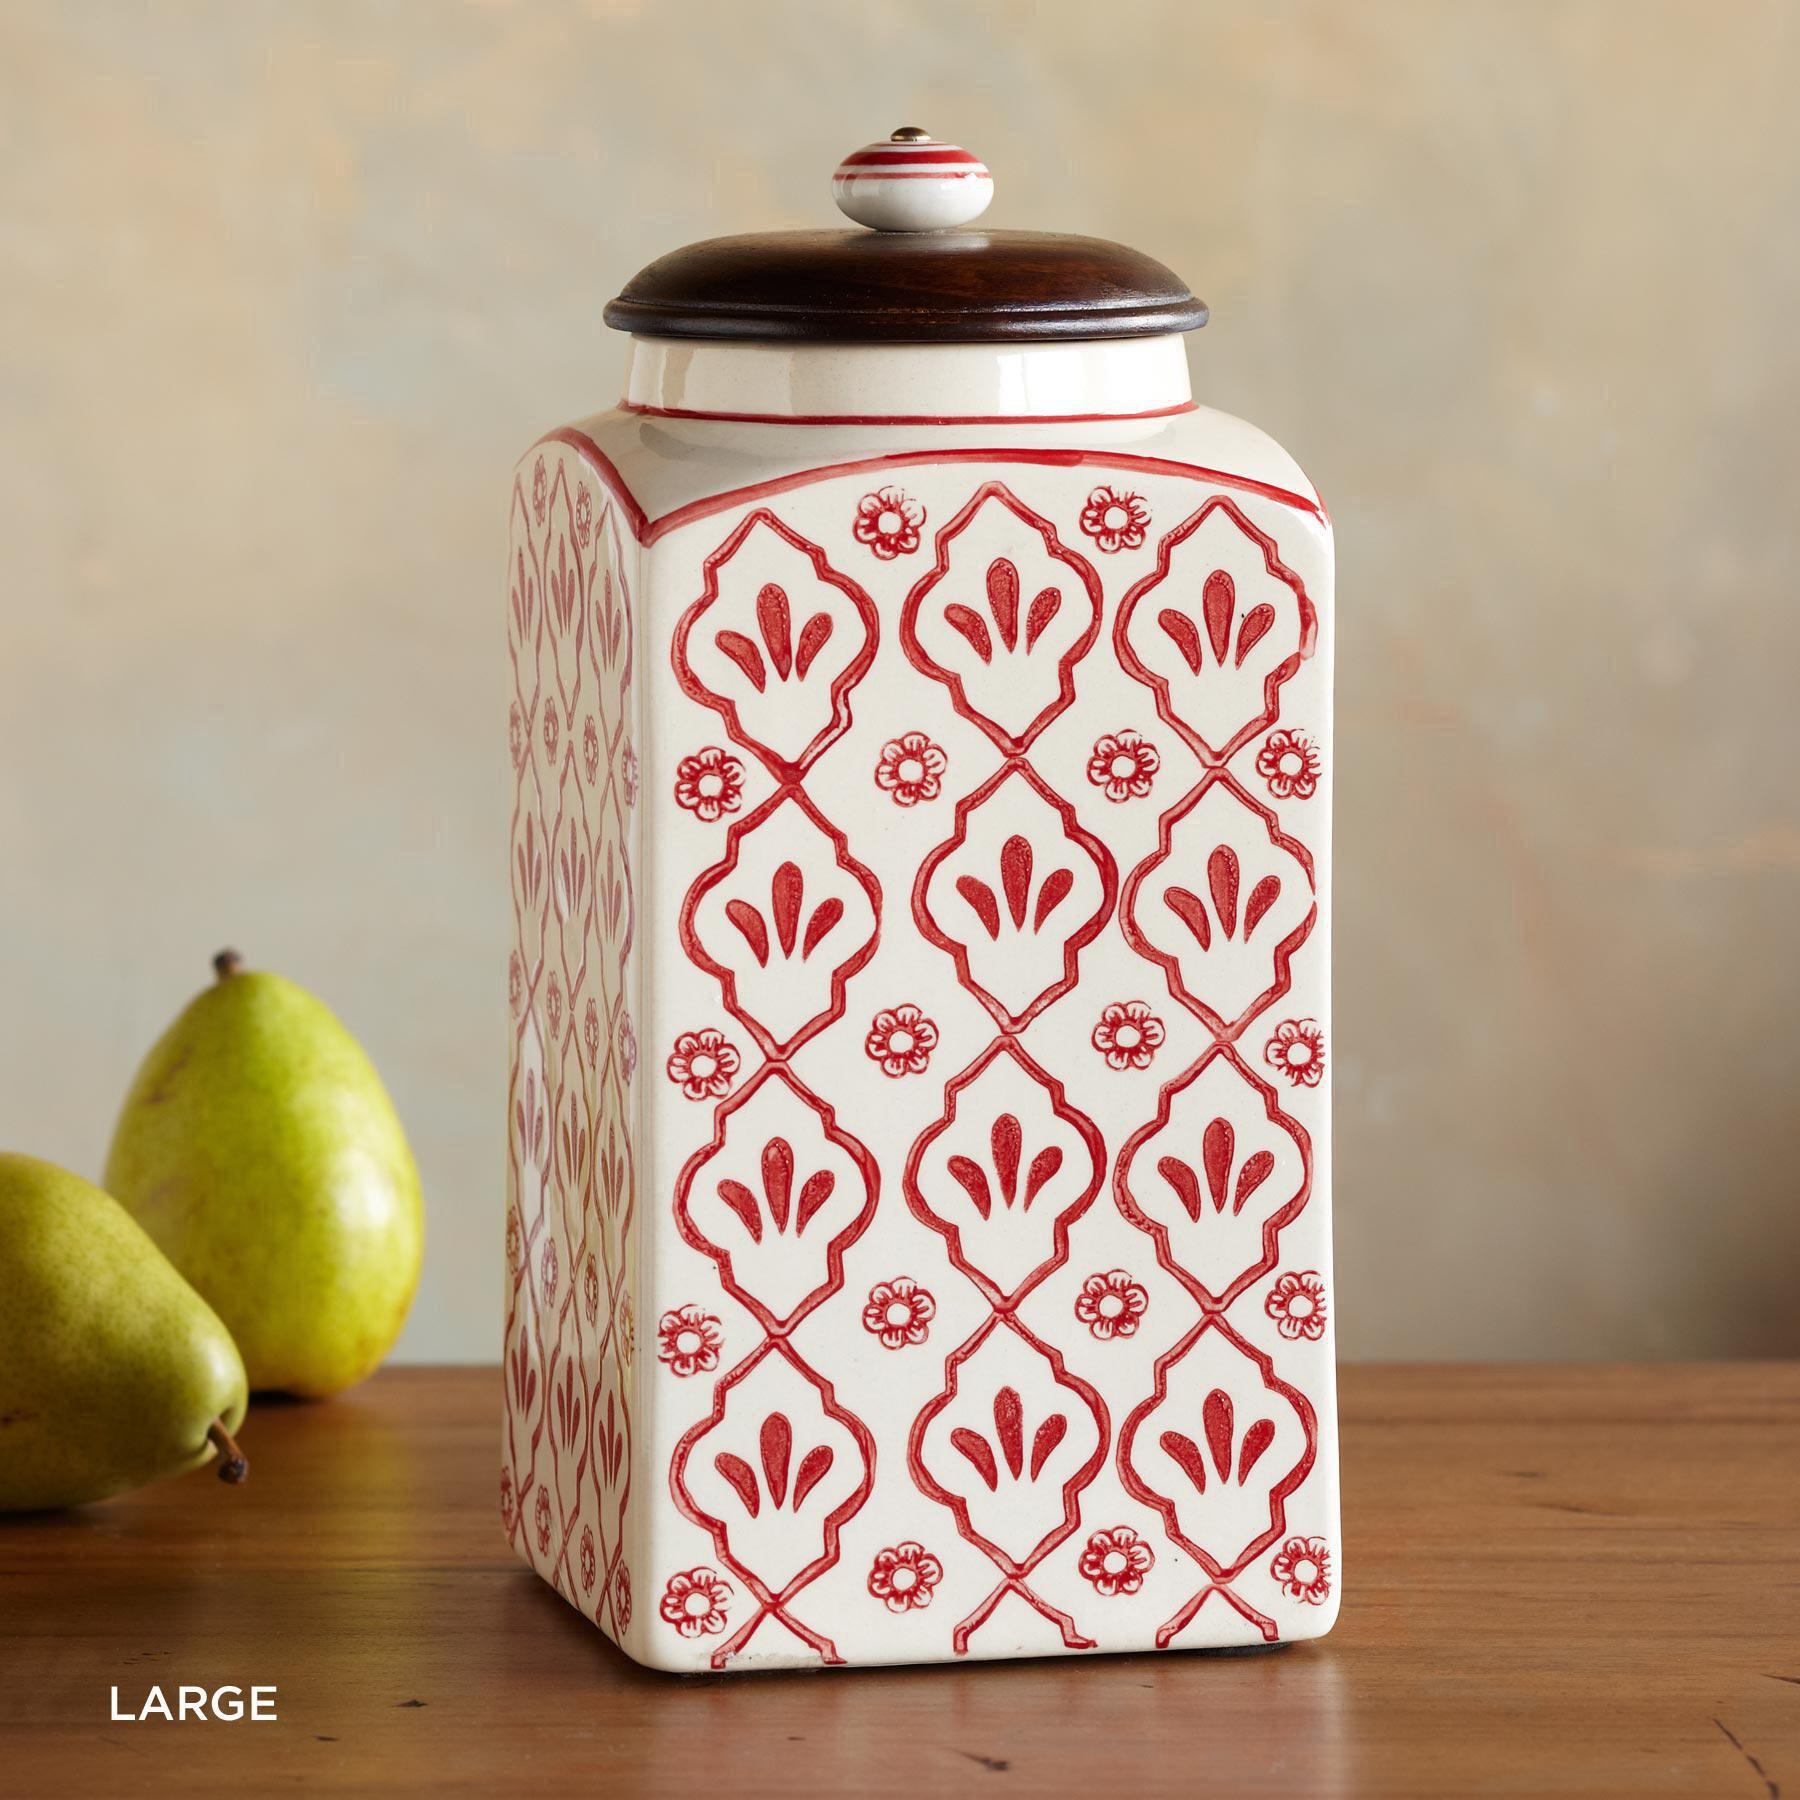 RED FLOWER CANISTERS: View 4